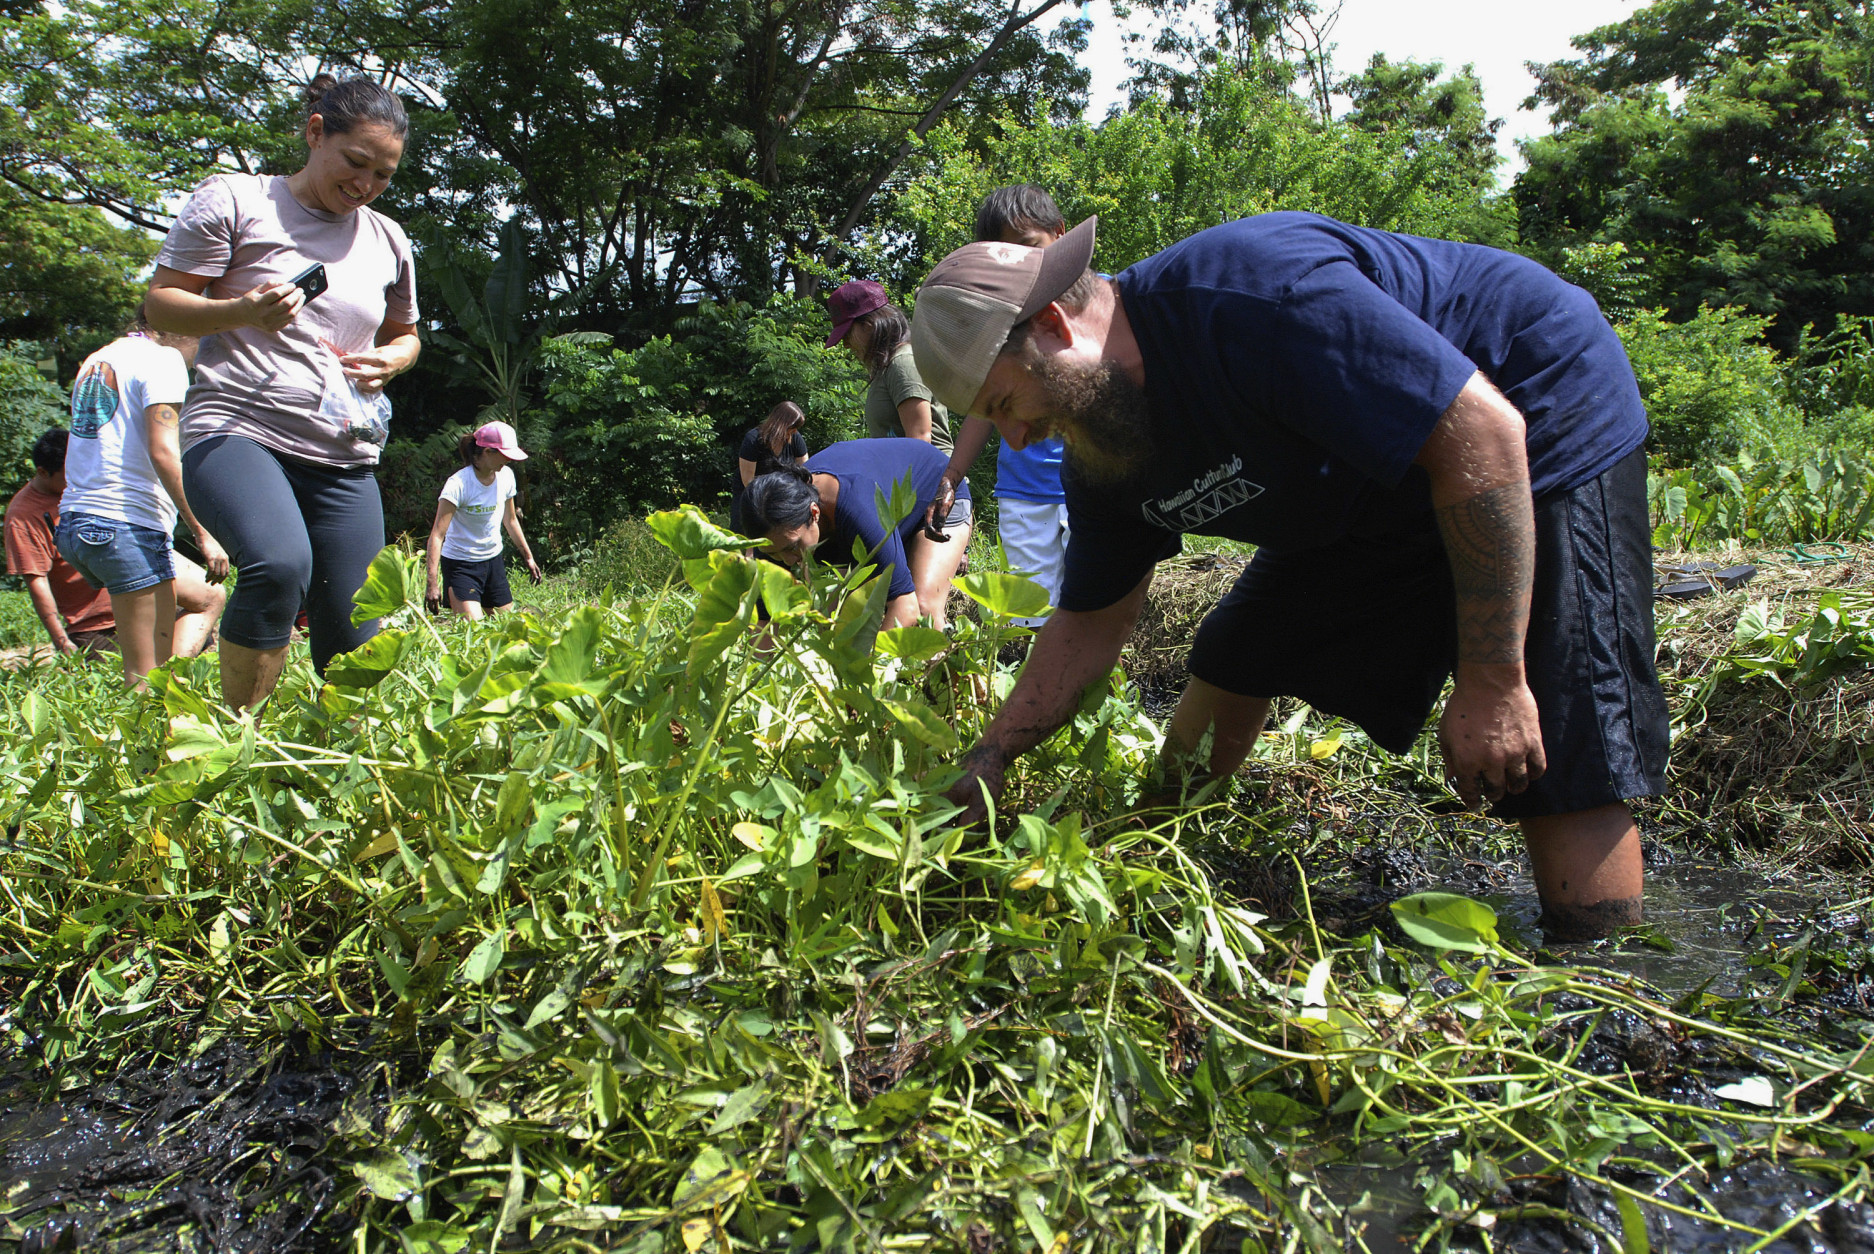 In this photo taken July 9, 2016, Anthony DeLuze, right, and Sierra Club volunteers clear a patch for taro planting at his farm in Aiea, Hawaii. Some residents including DeLuze and local water utility officials want the Navy to move 20 World War II-era tanks that sit on top of one Honolulu's most important aquifers, but the Navy views the tanks as a vital strategic asset that would be difficult to replicate elsewhere. (AP Photo/Audrey McAvoy)